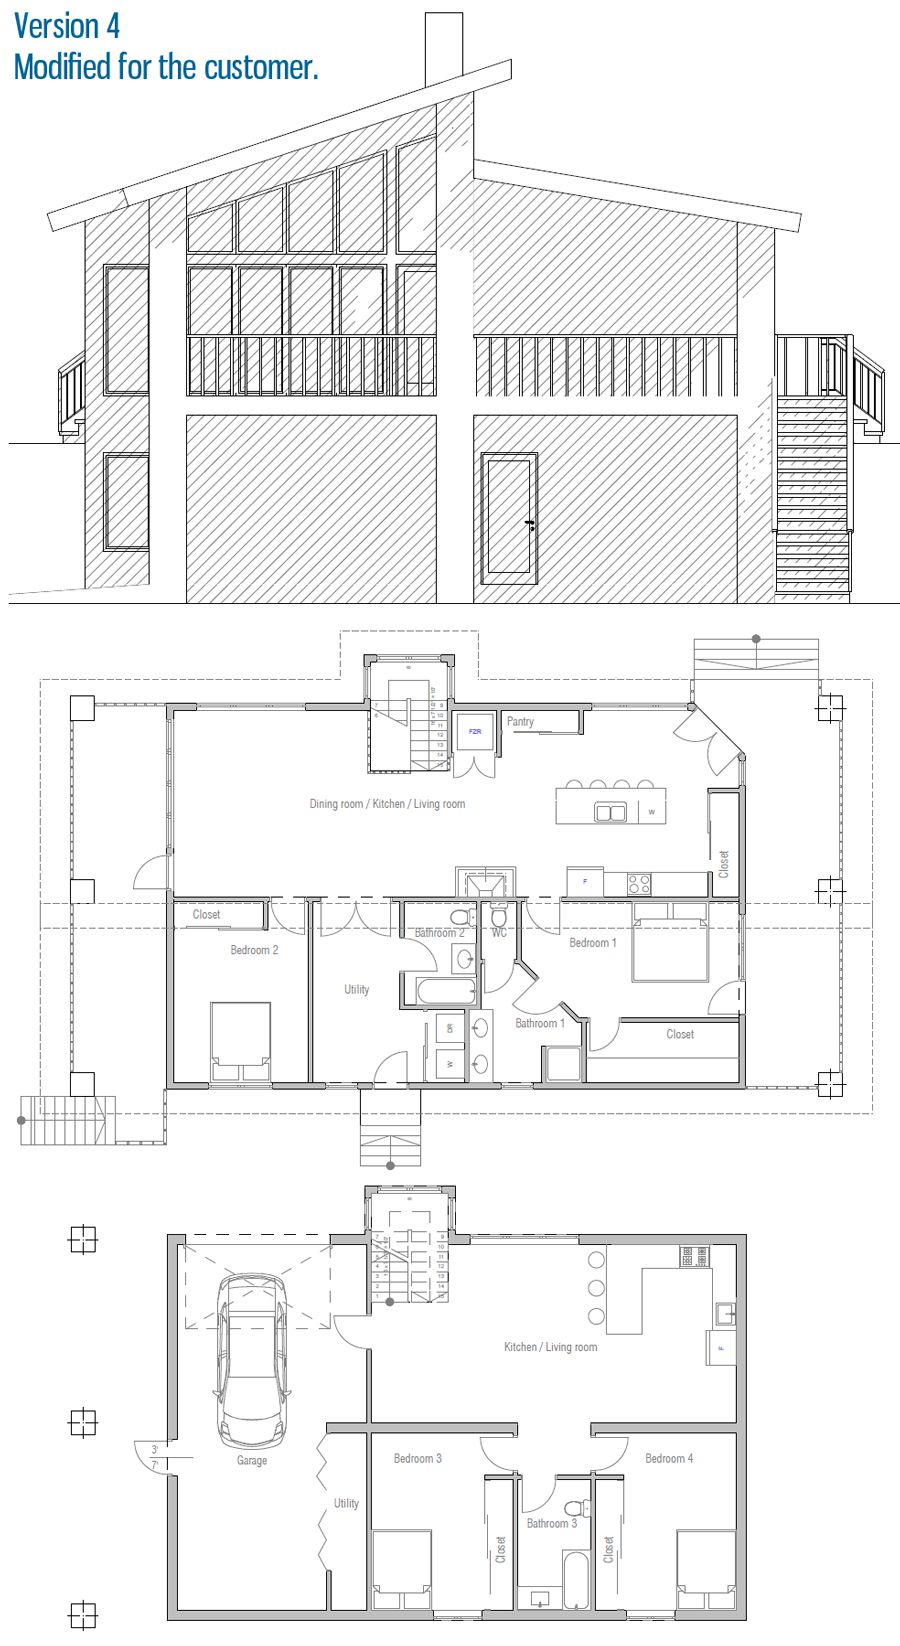 House Design House Plan Ch319 41 Small House Plans How To Plan Architectural House Plans